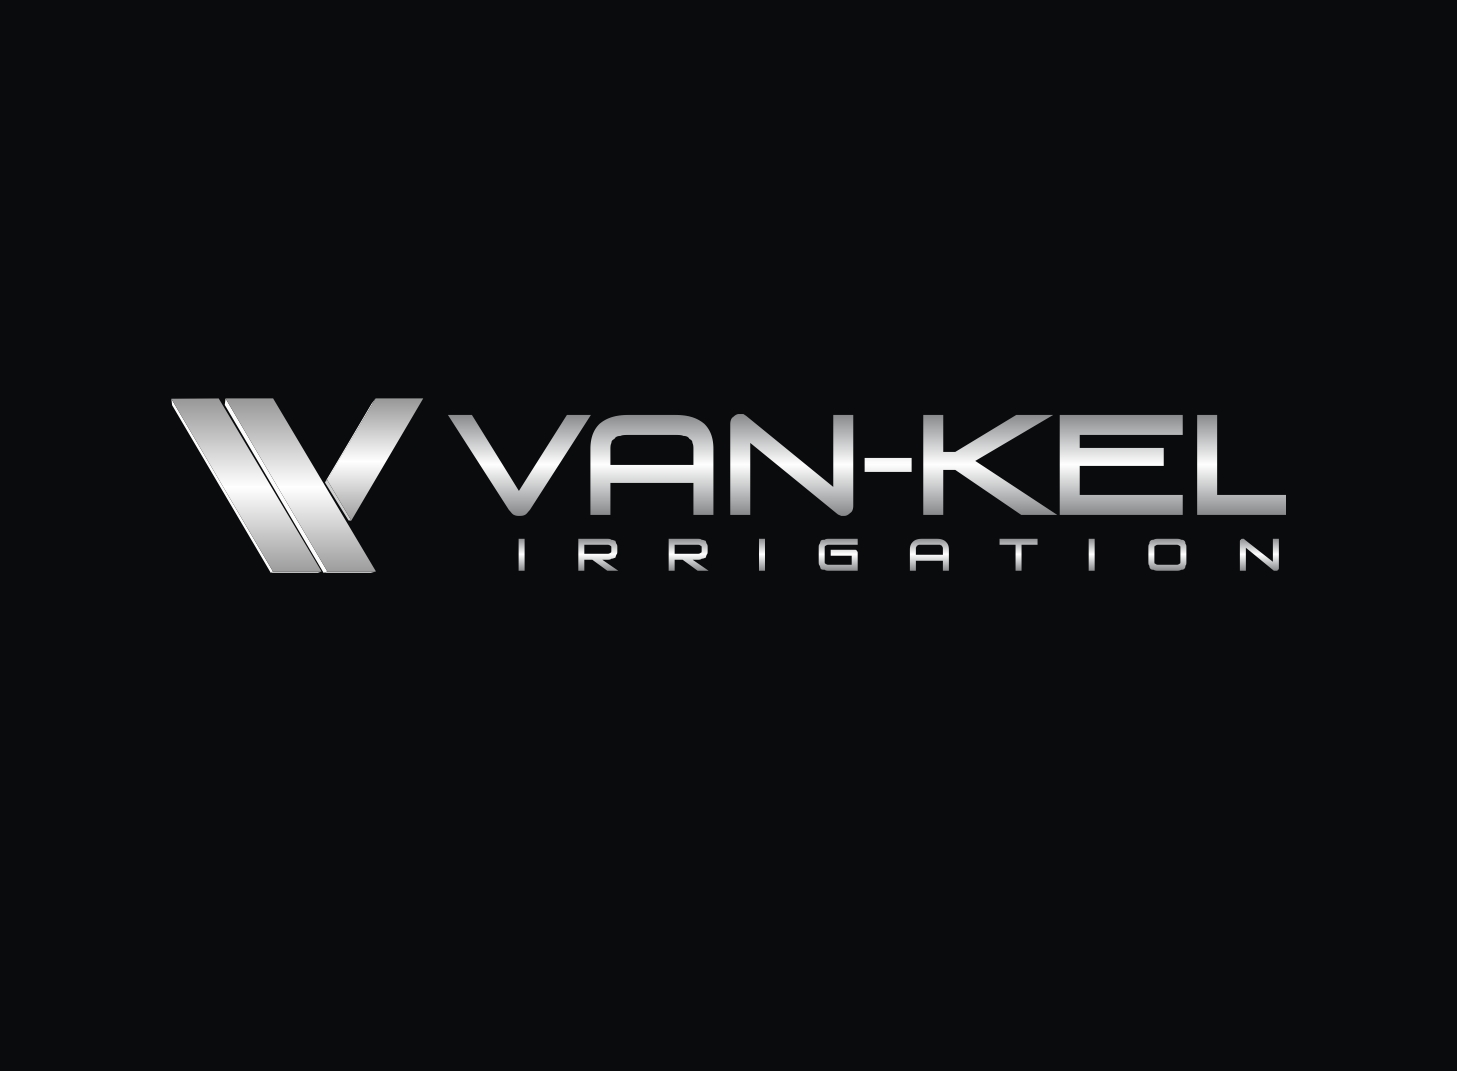 Logo Design by Zdravko Krulj - Entry No. 30 in the Logo Design Contest Van-Kel Irrigation Logo Design.